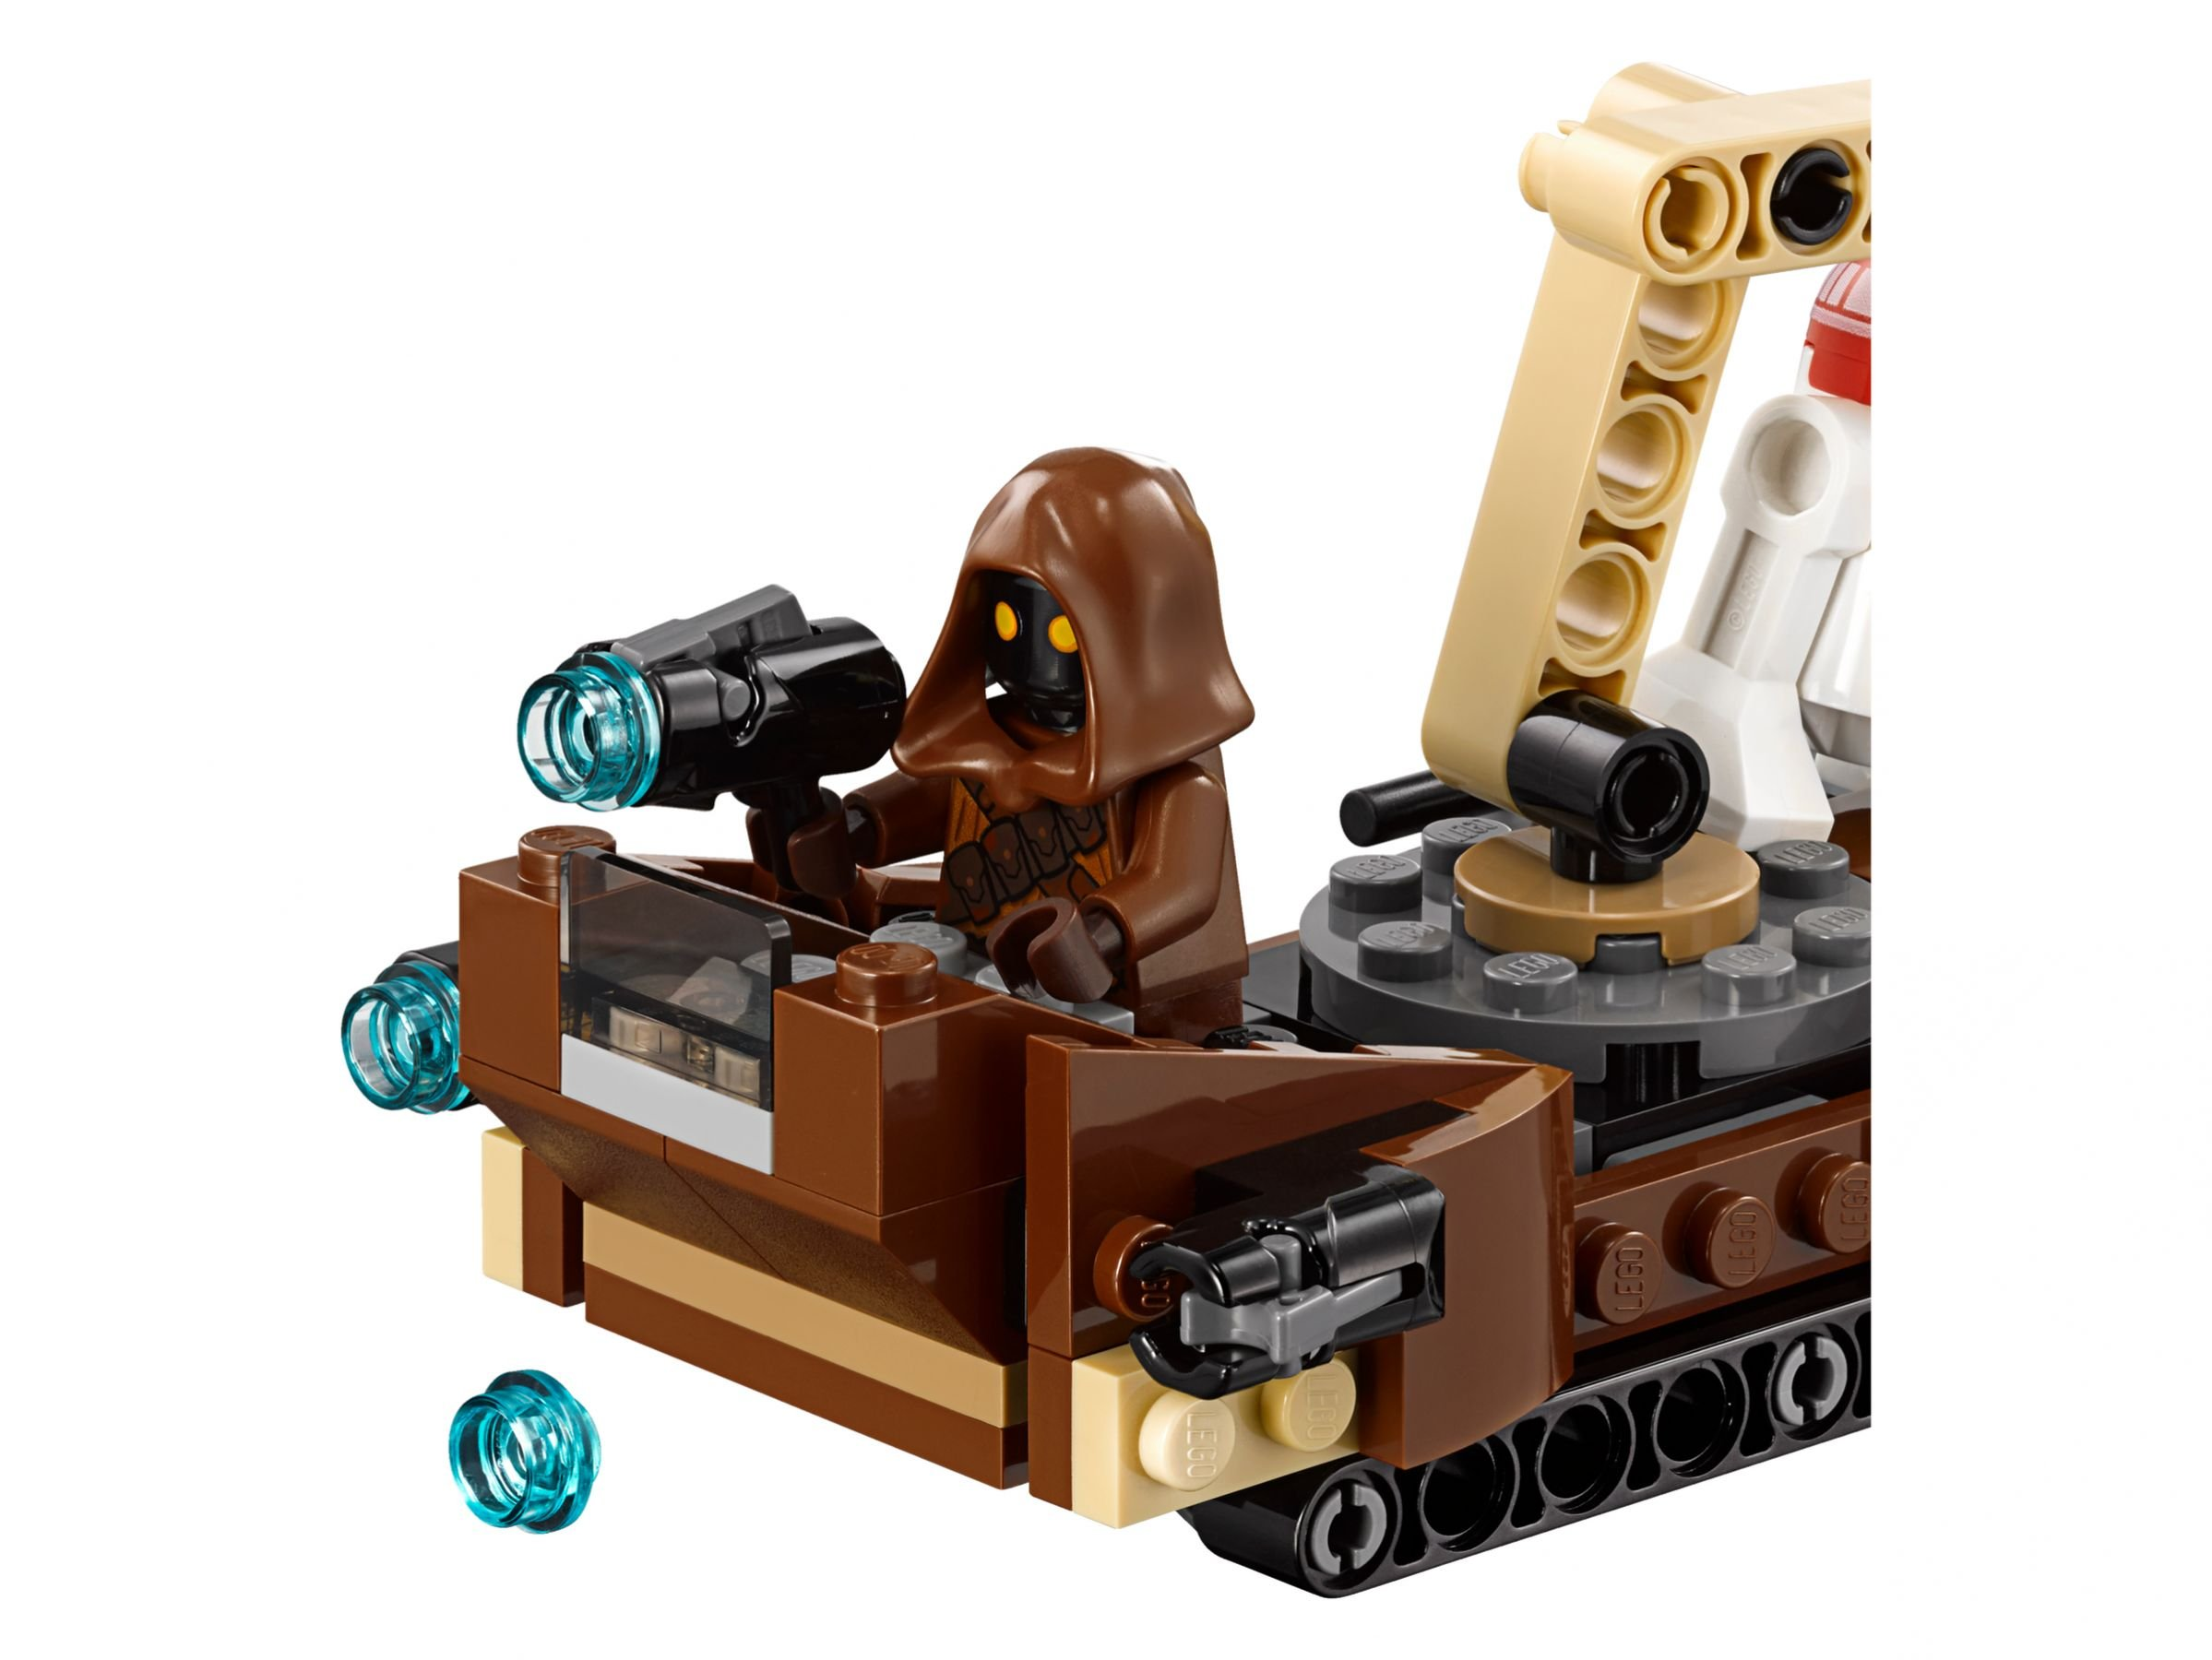 LEGO Star Wars 75198 Tatooine Battle Pack LEGO_75198_alt5.jpg